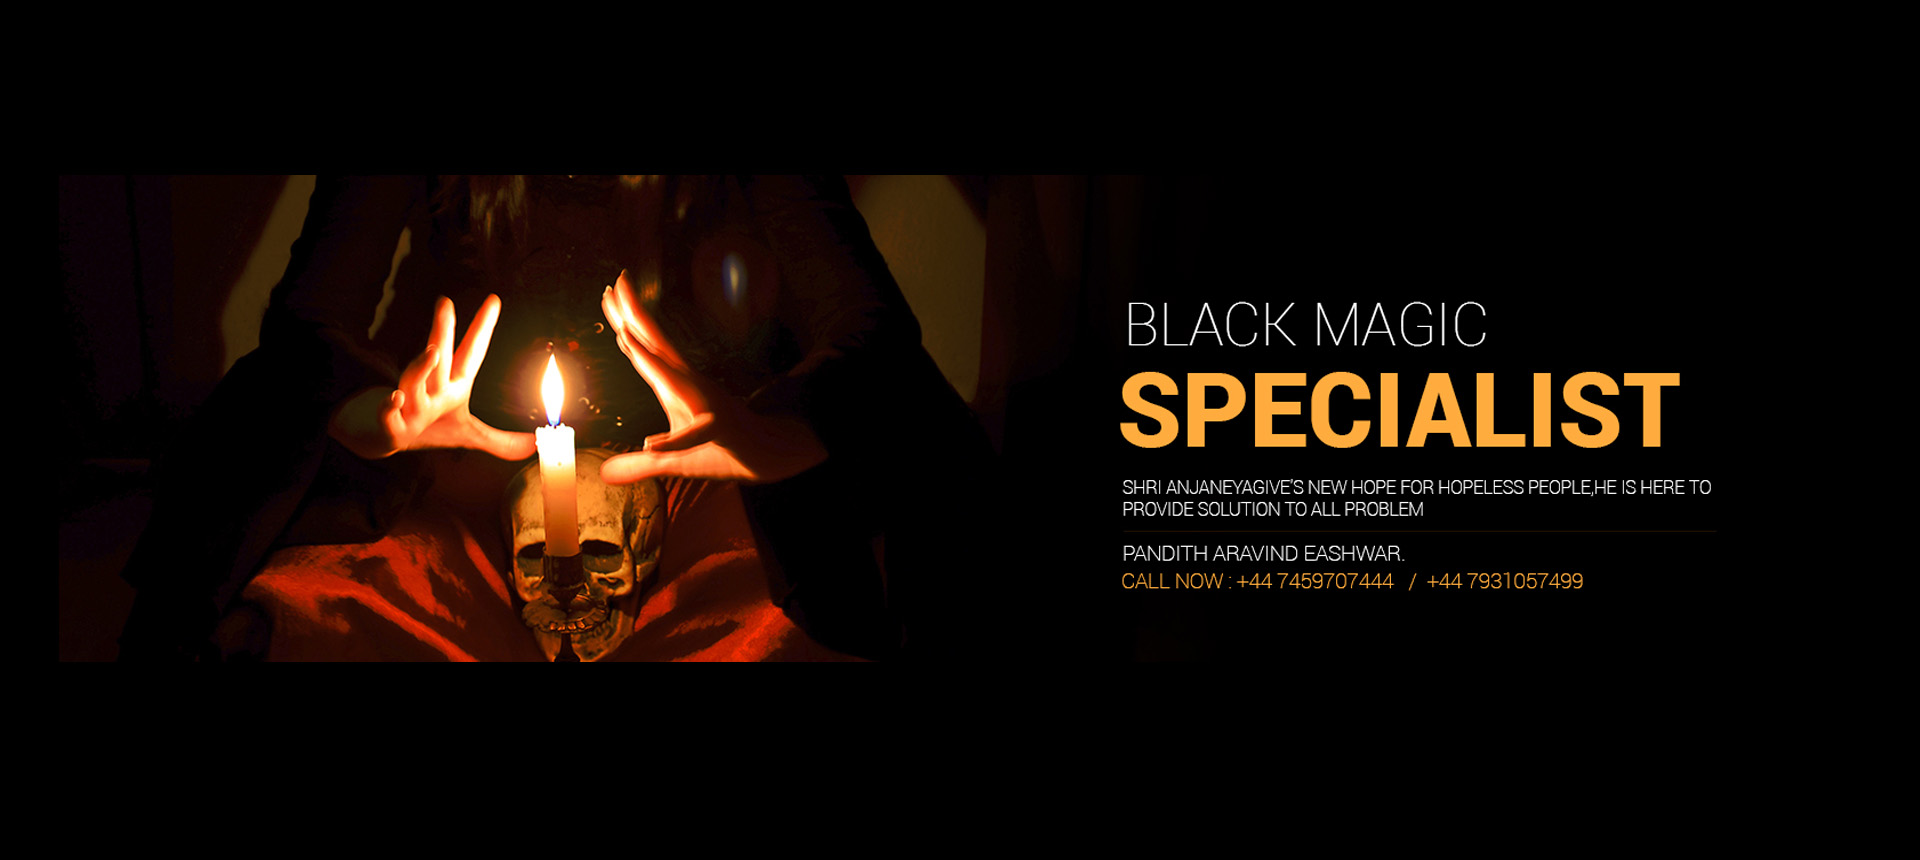 Black Magic Removal Expert in UK,Black Magic Expert in London,,Black Magic Specialist in London,Remove Black Magic Expert in London, Remove Black Magic Specialist in London